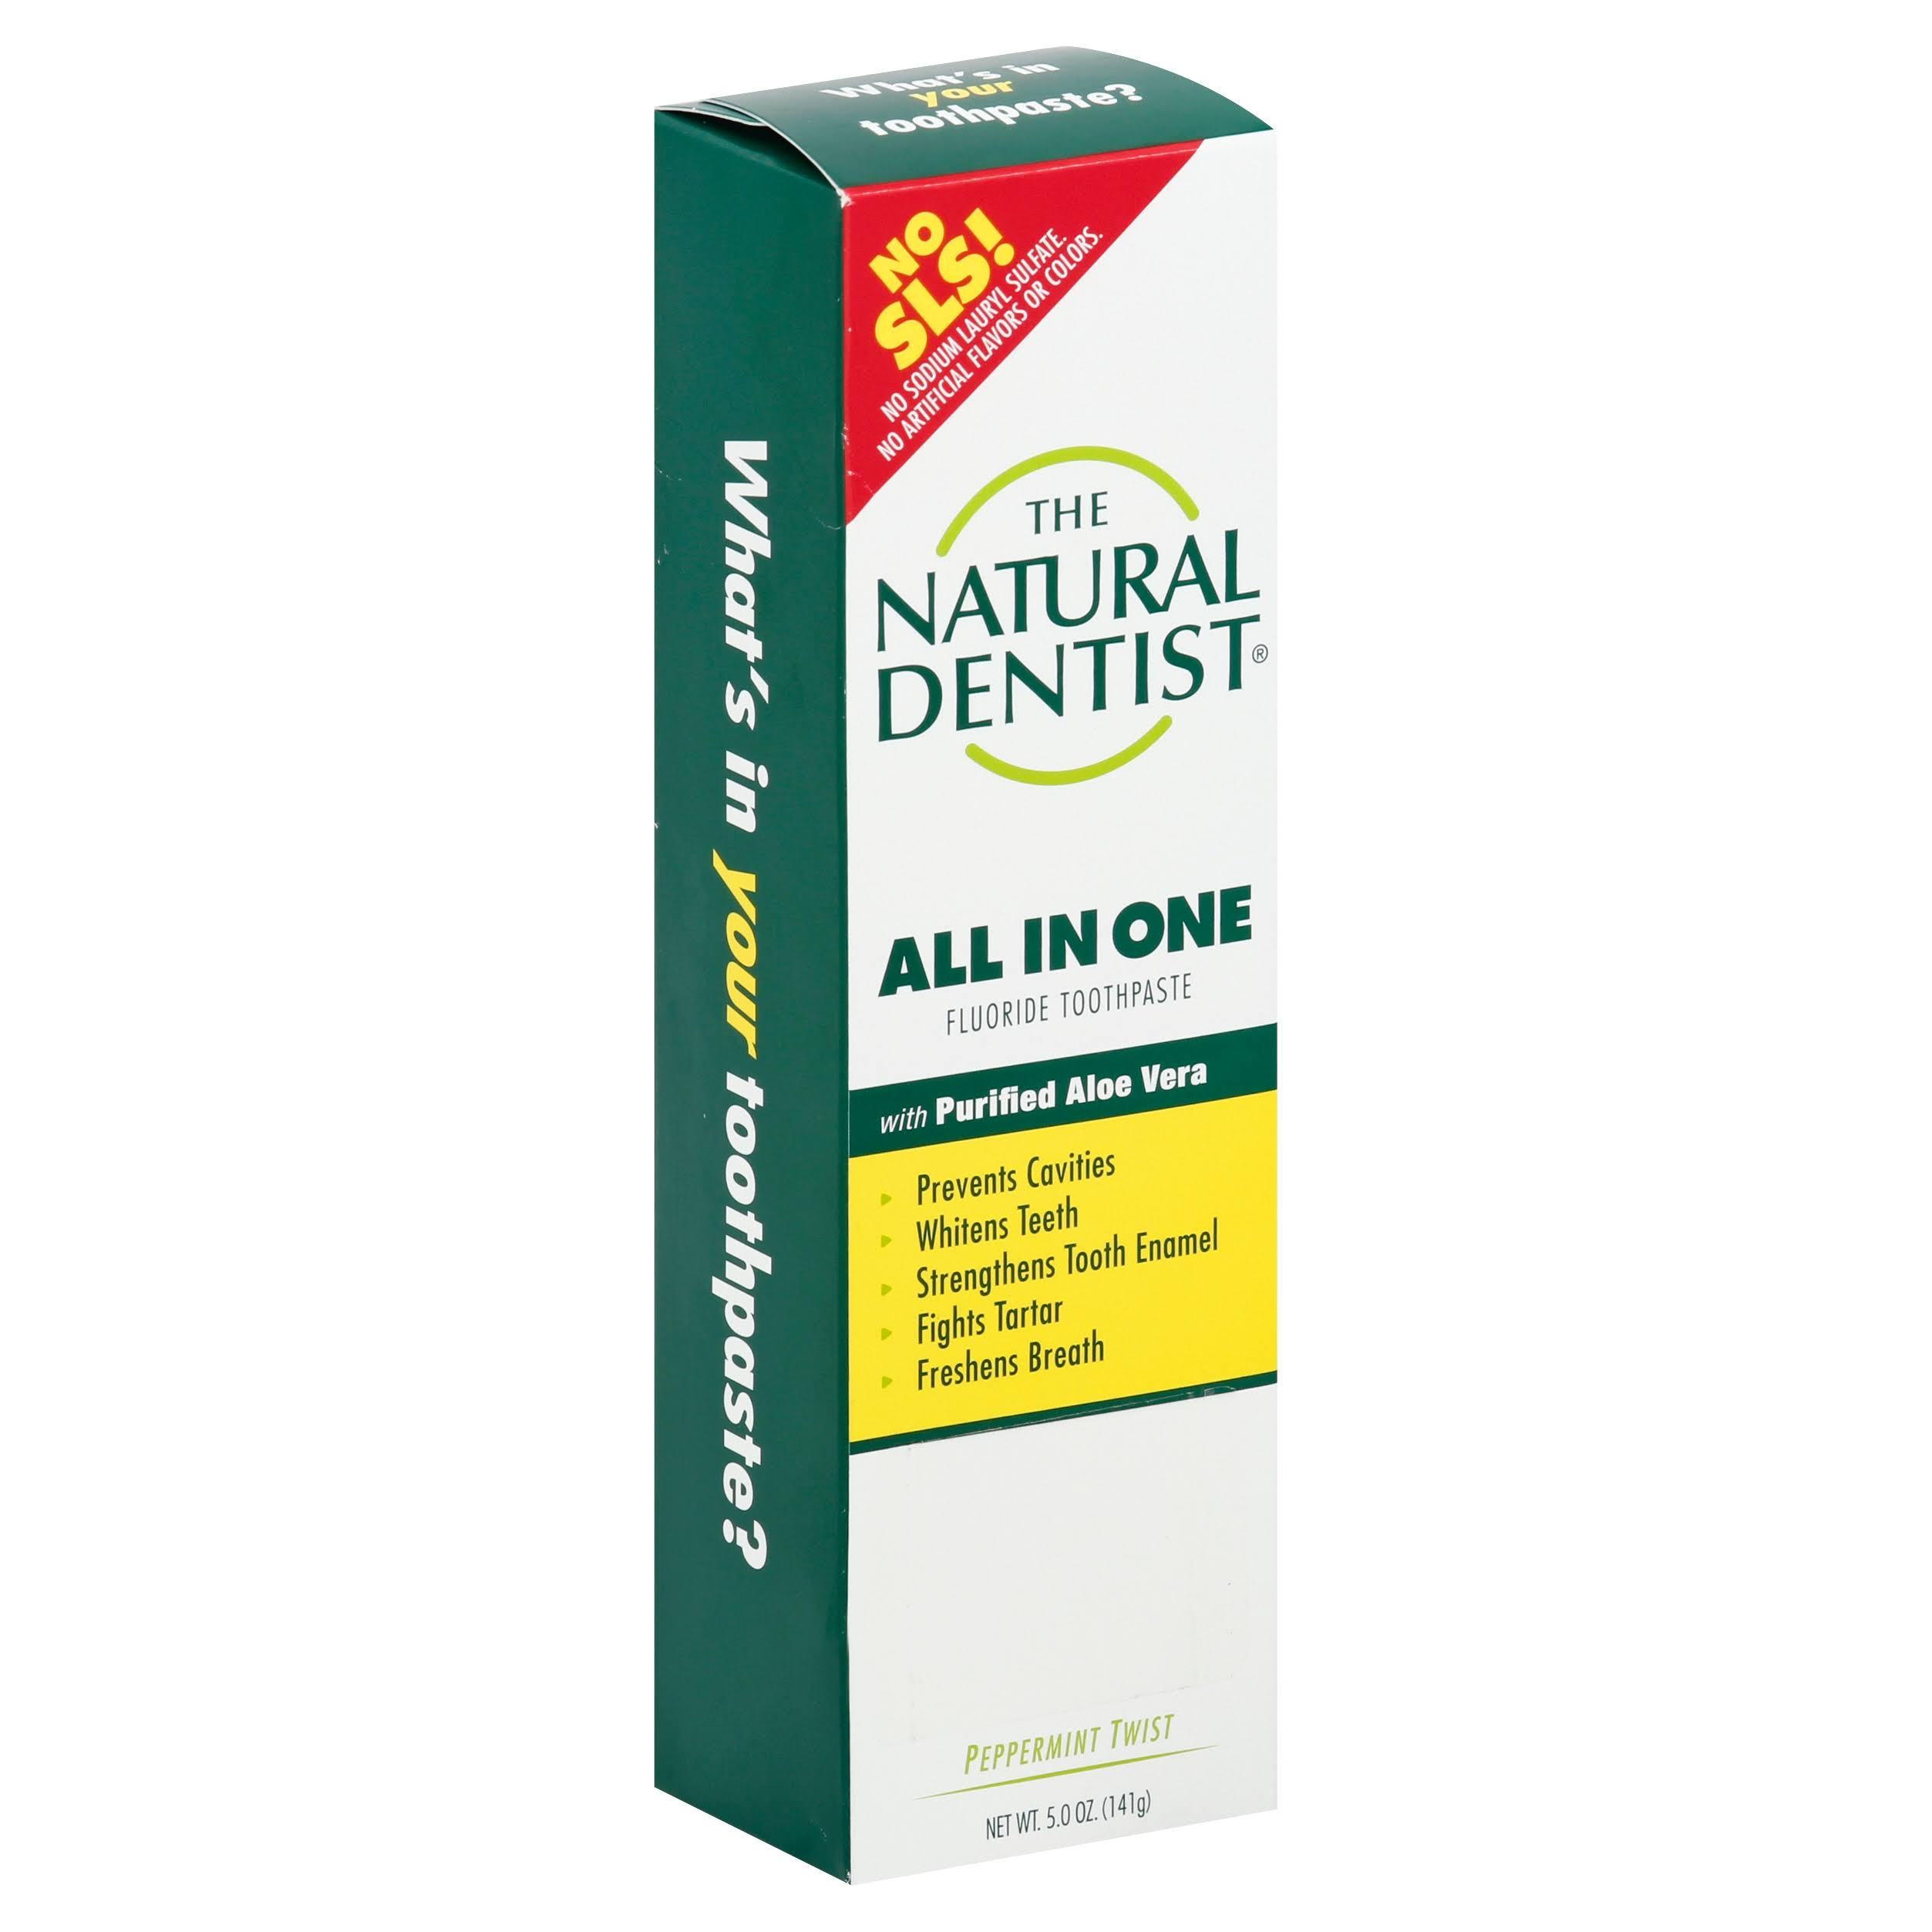 The Natural Dentist Healthy Teeth and Gums Natural Fluoride Toothpaste - Peppermint Twist, 5oz